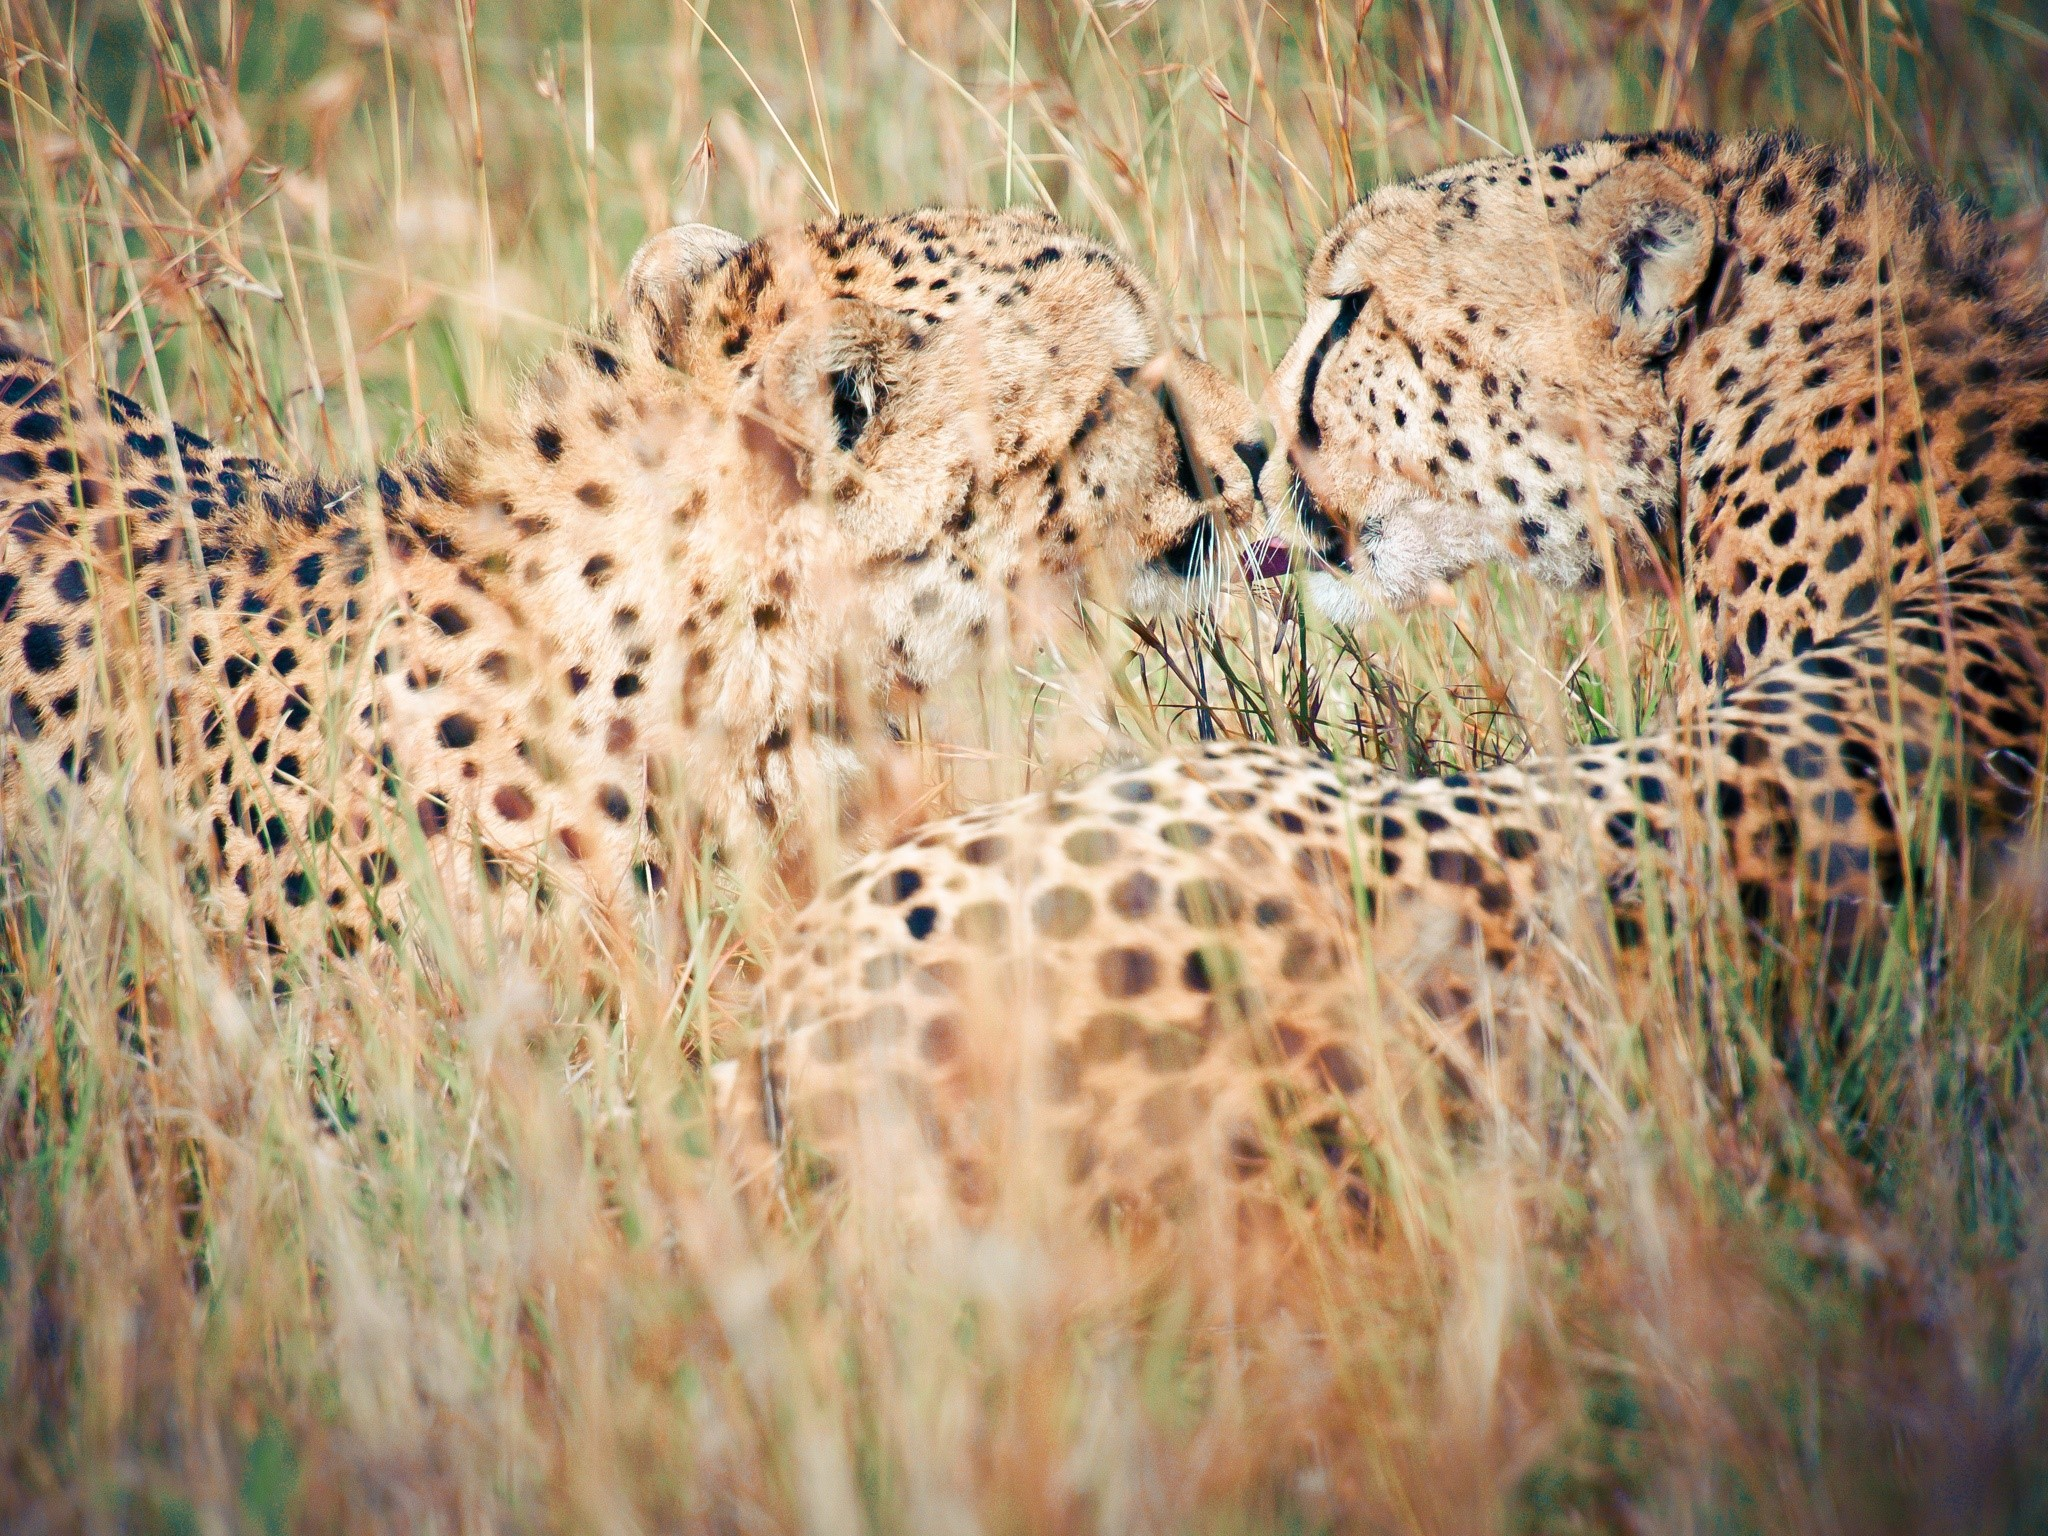 Wallpaper Leopards in grass